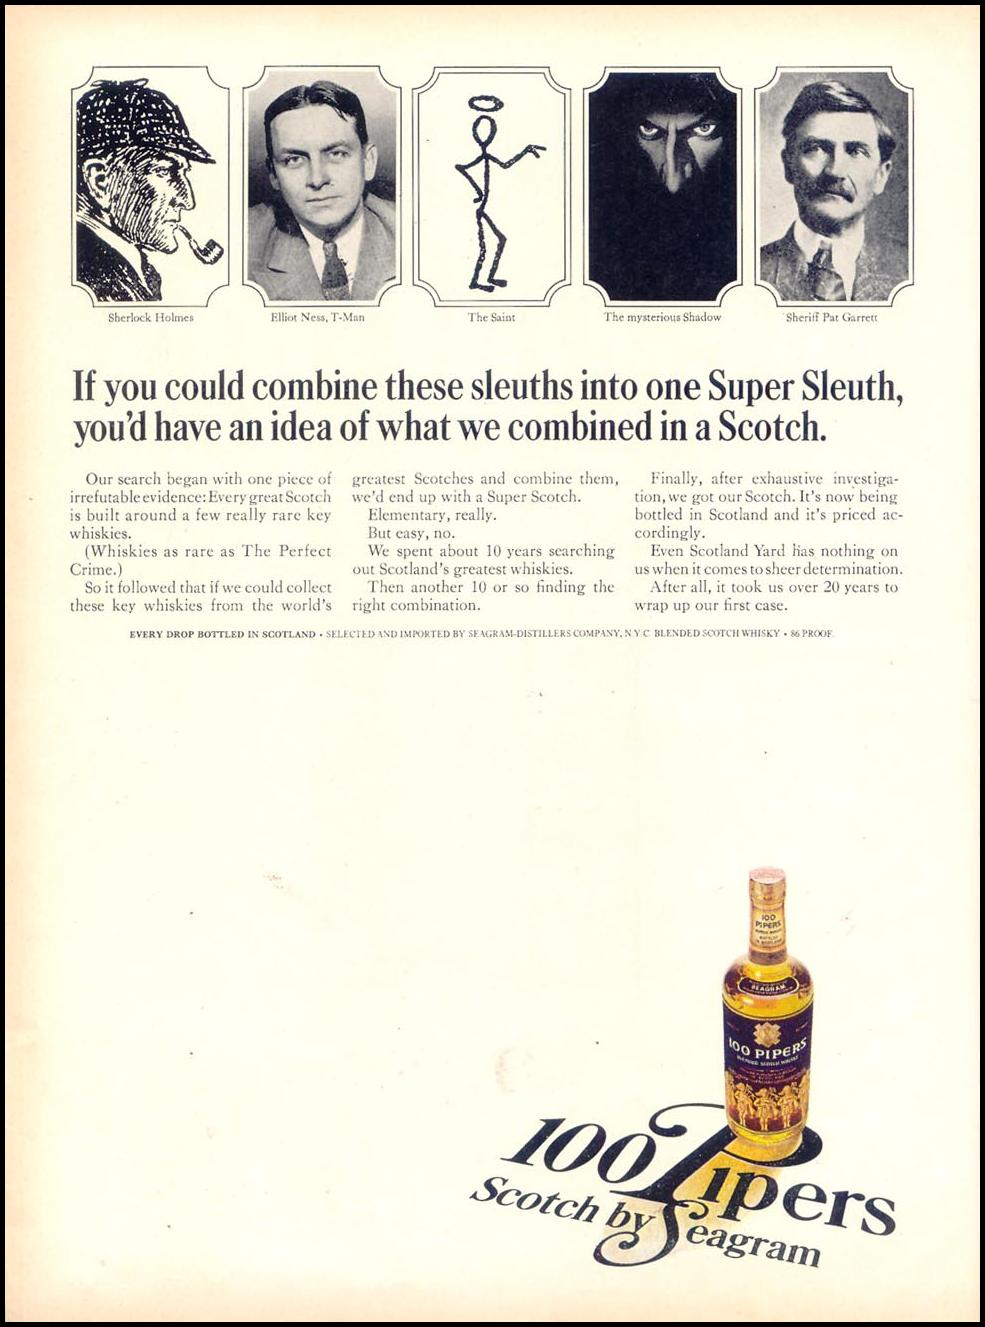 100 PIPERS SCOTCH